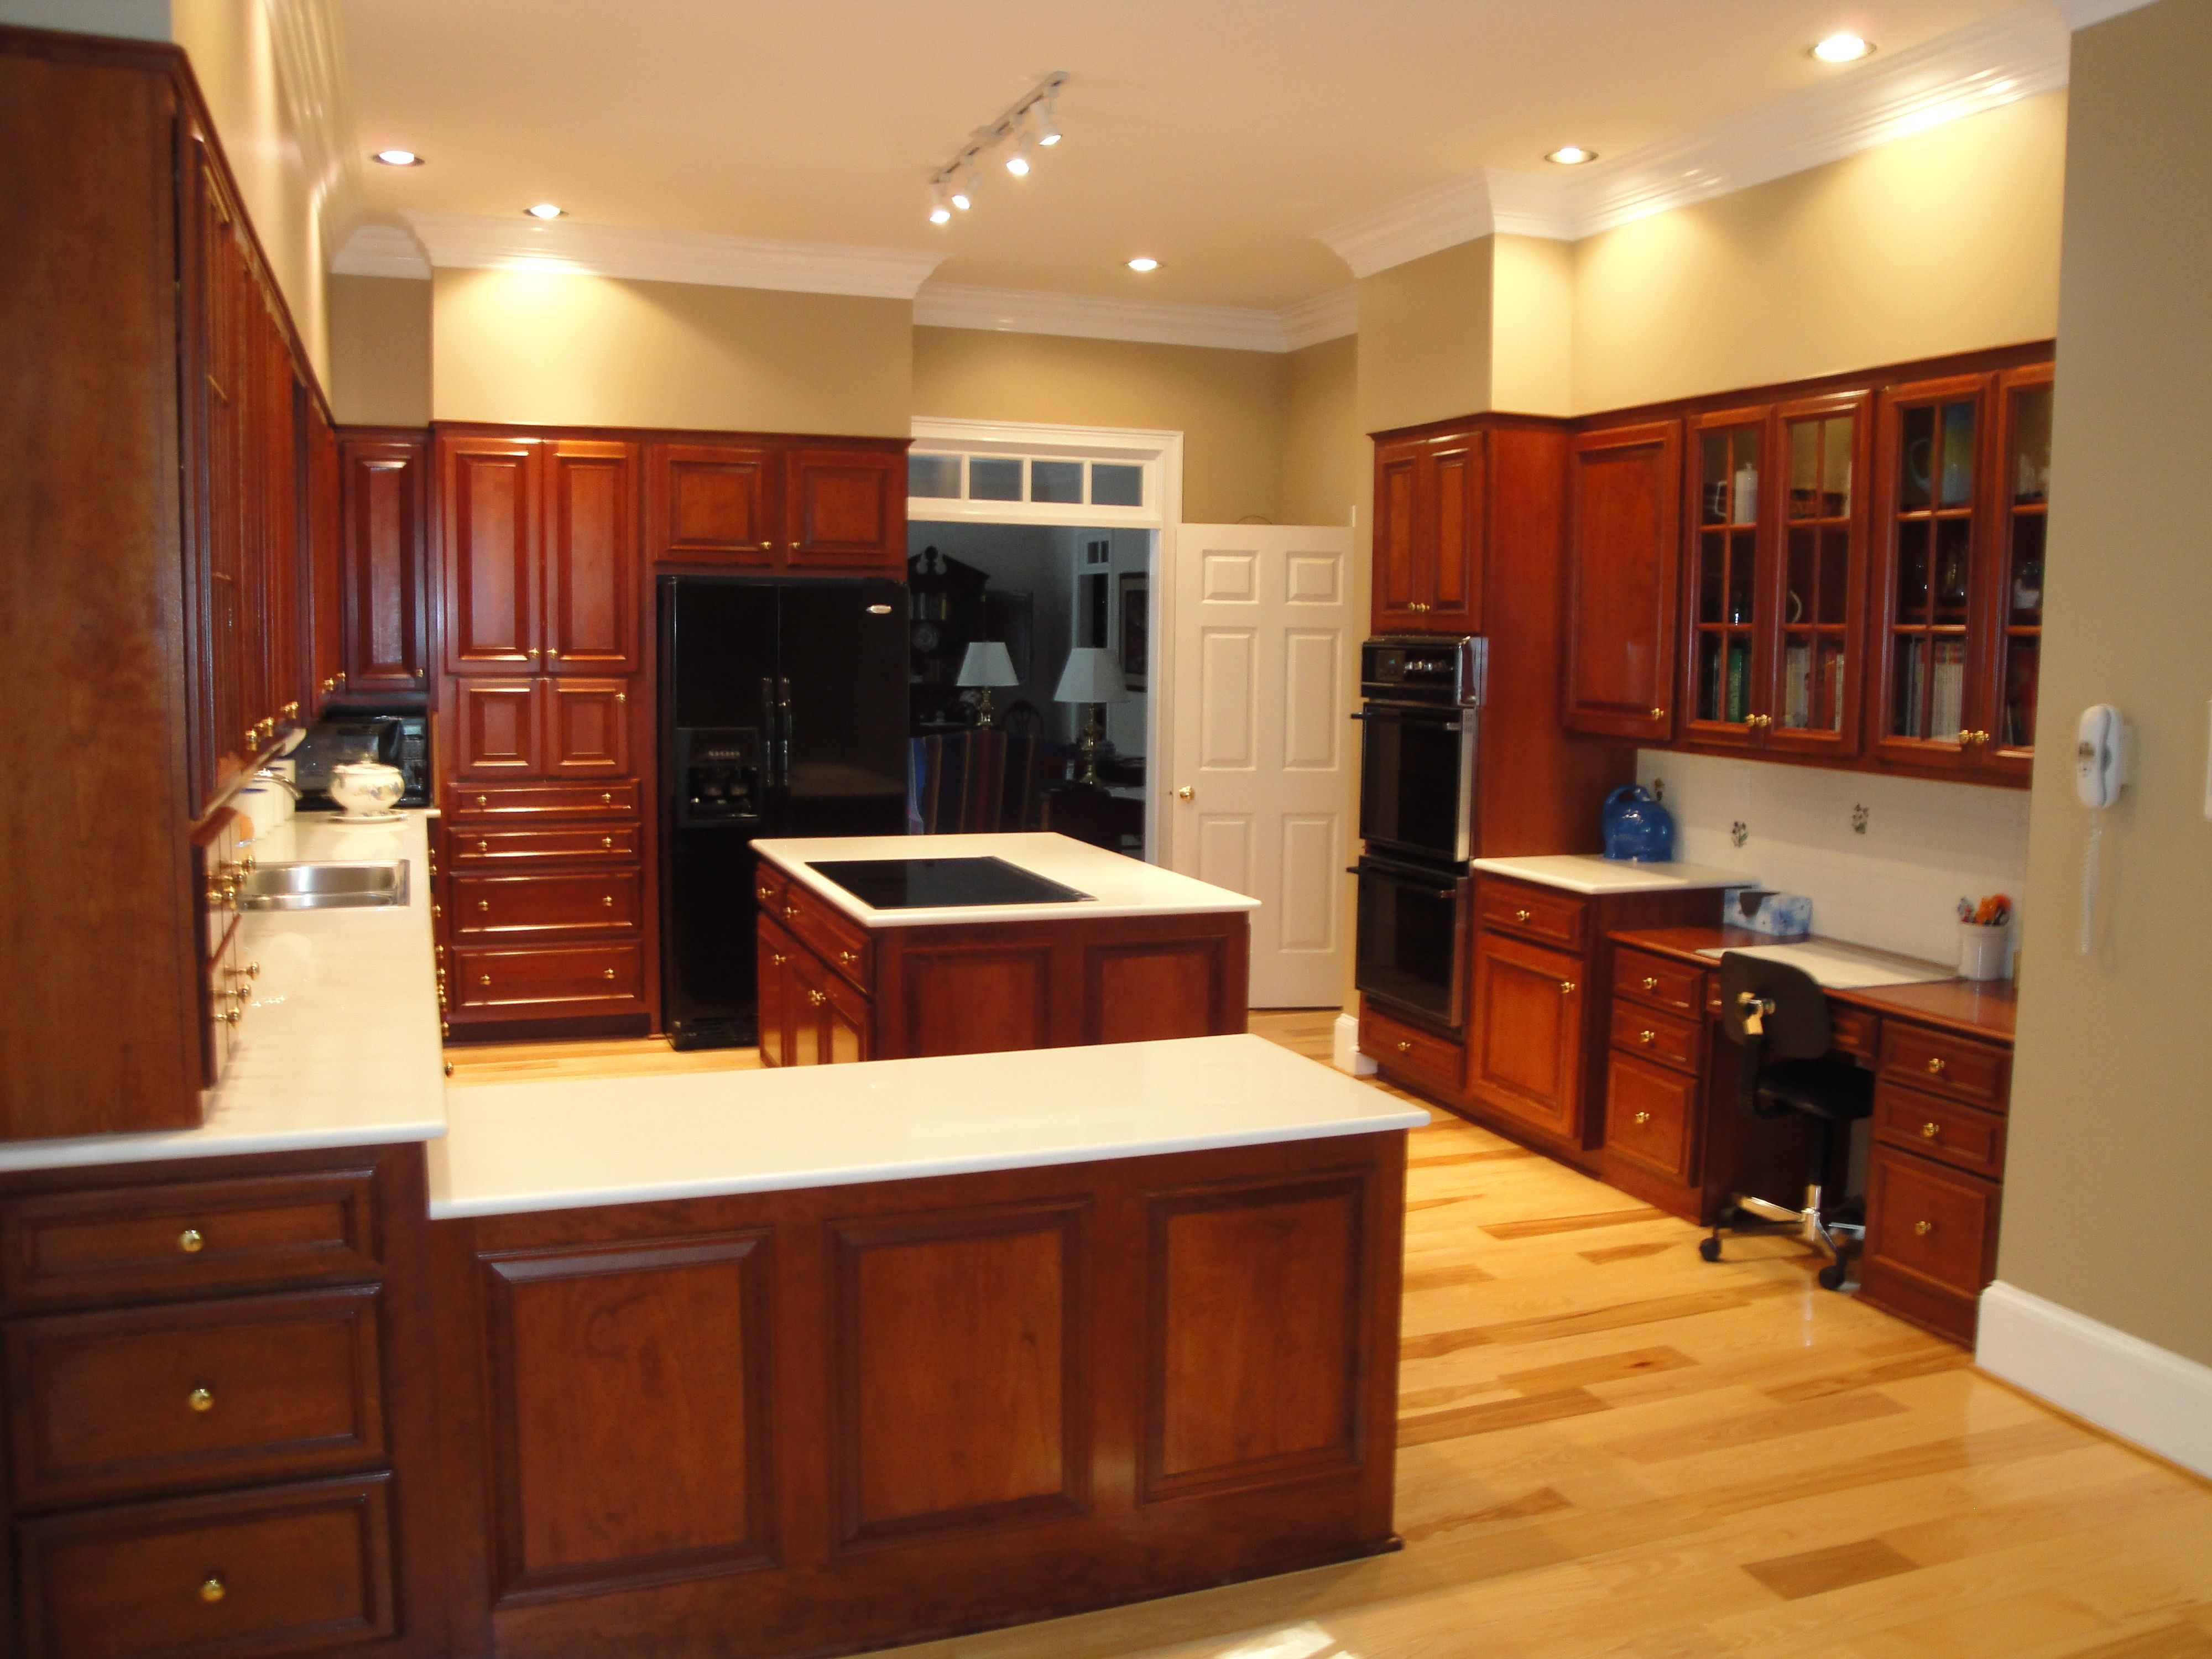 hickory floors, cherry cabinets. Black appliances? and ... on Maple Kitchen Cabinets With Dark Wood Floors Dark Countertops  id=66627